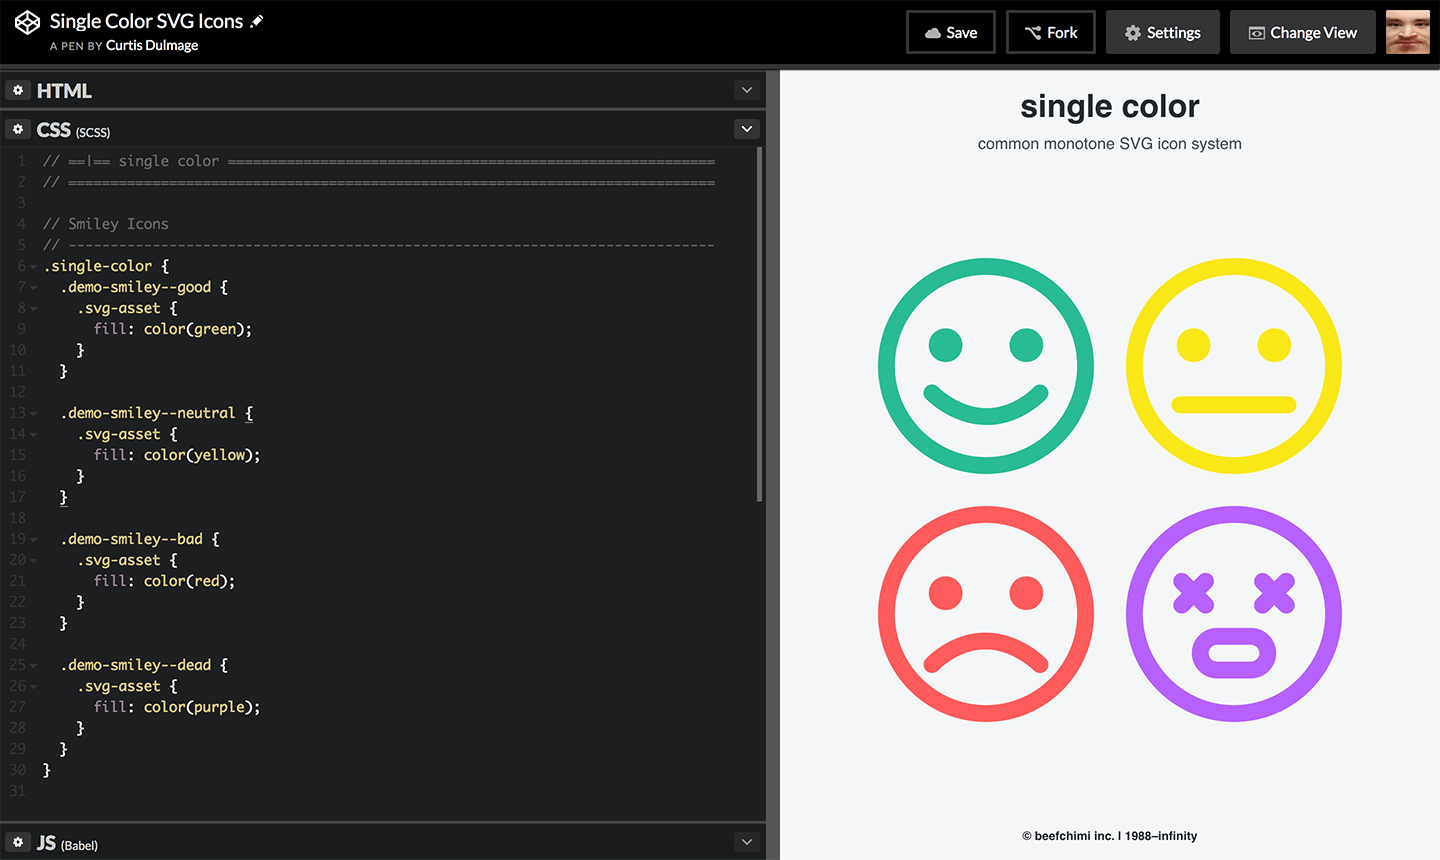 Responsive Multicolor Svg Icons The Latest In Cutting Edge Svg By Curtis Dulmage Shopify Ux